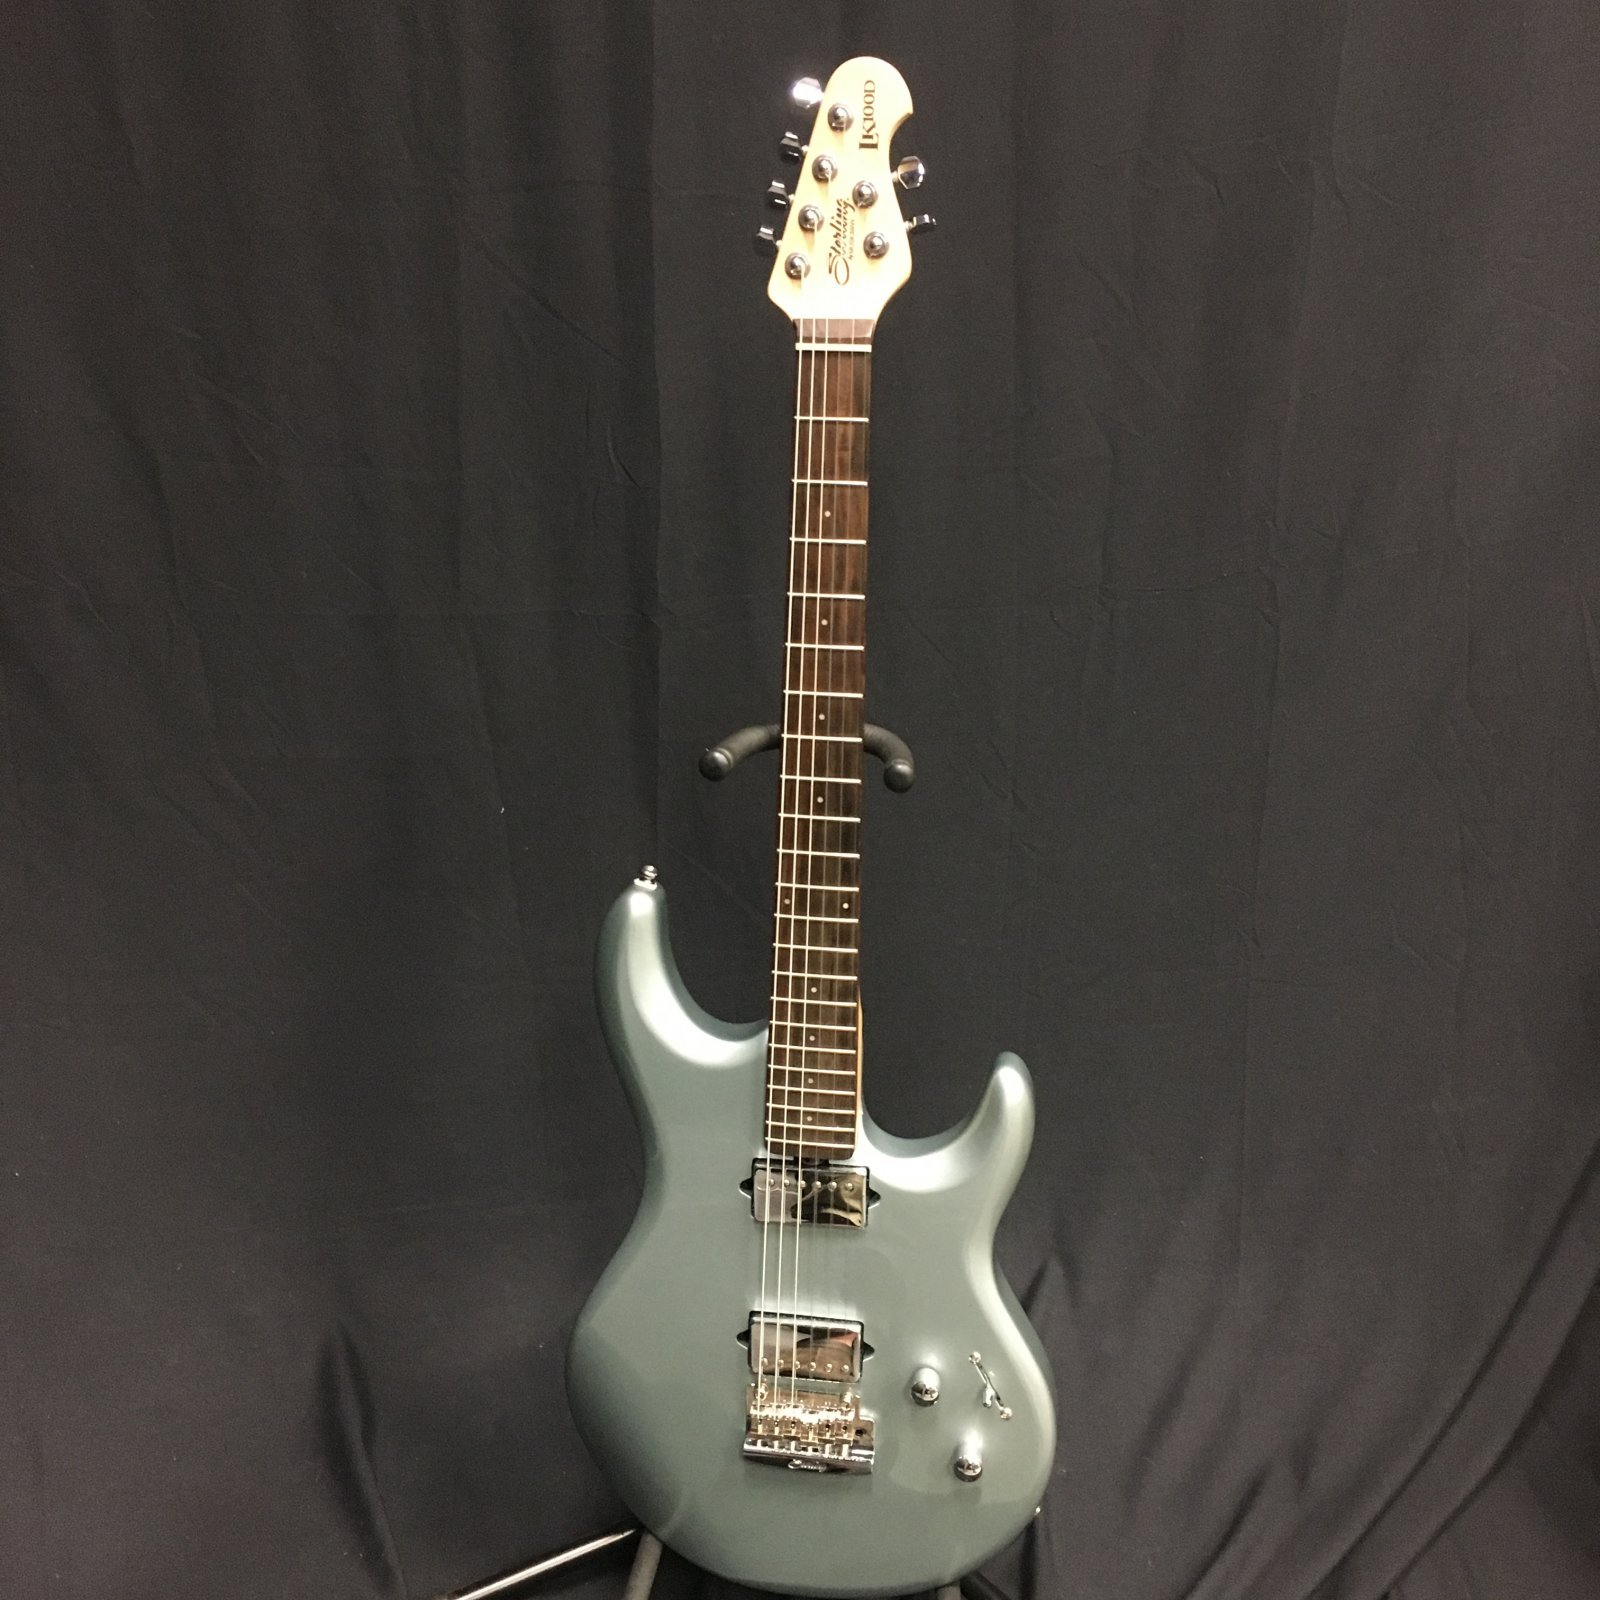 Used Sterling LK1000 with Feather light case